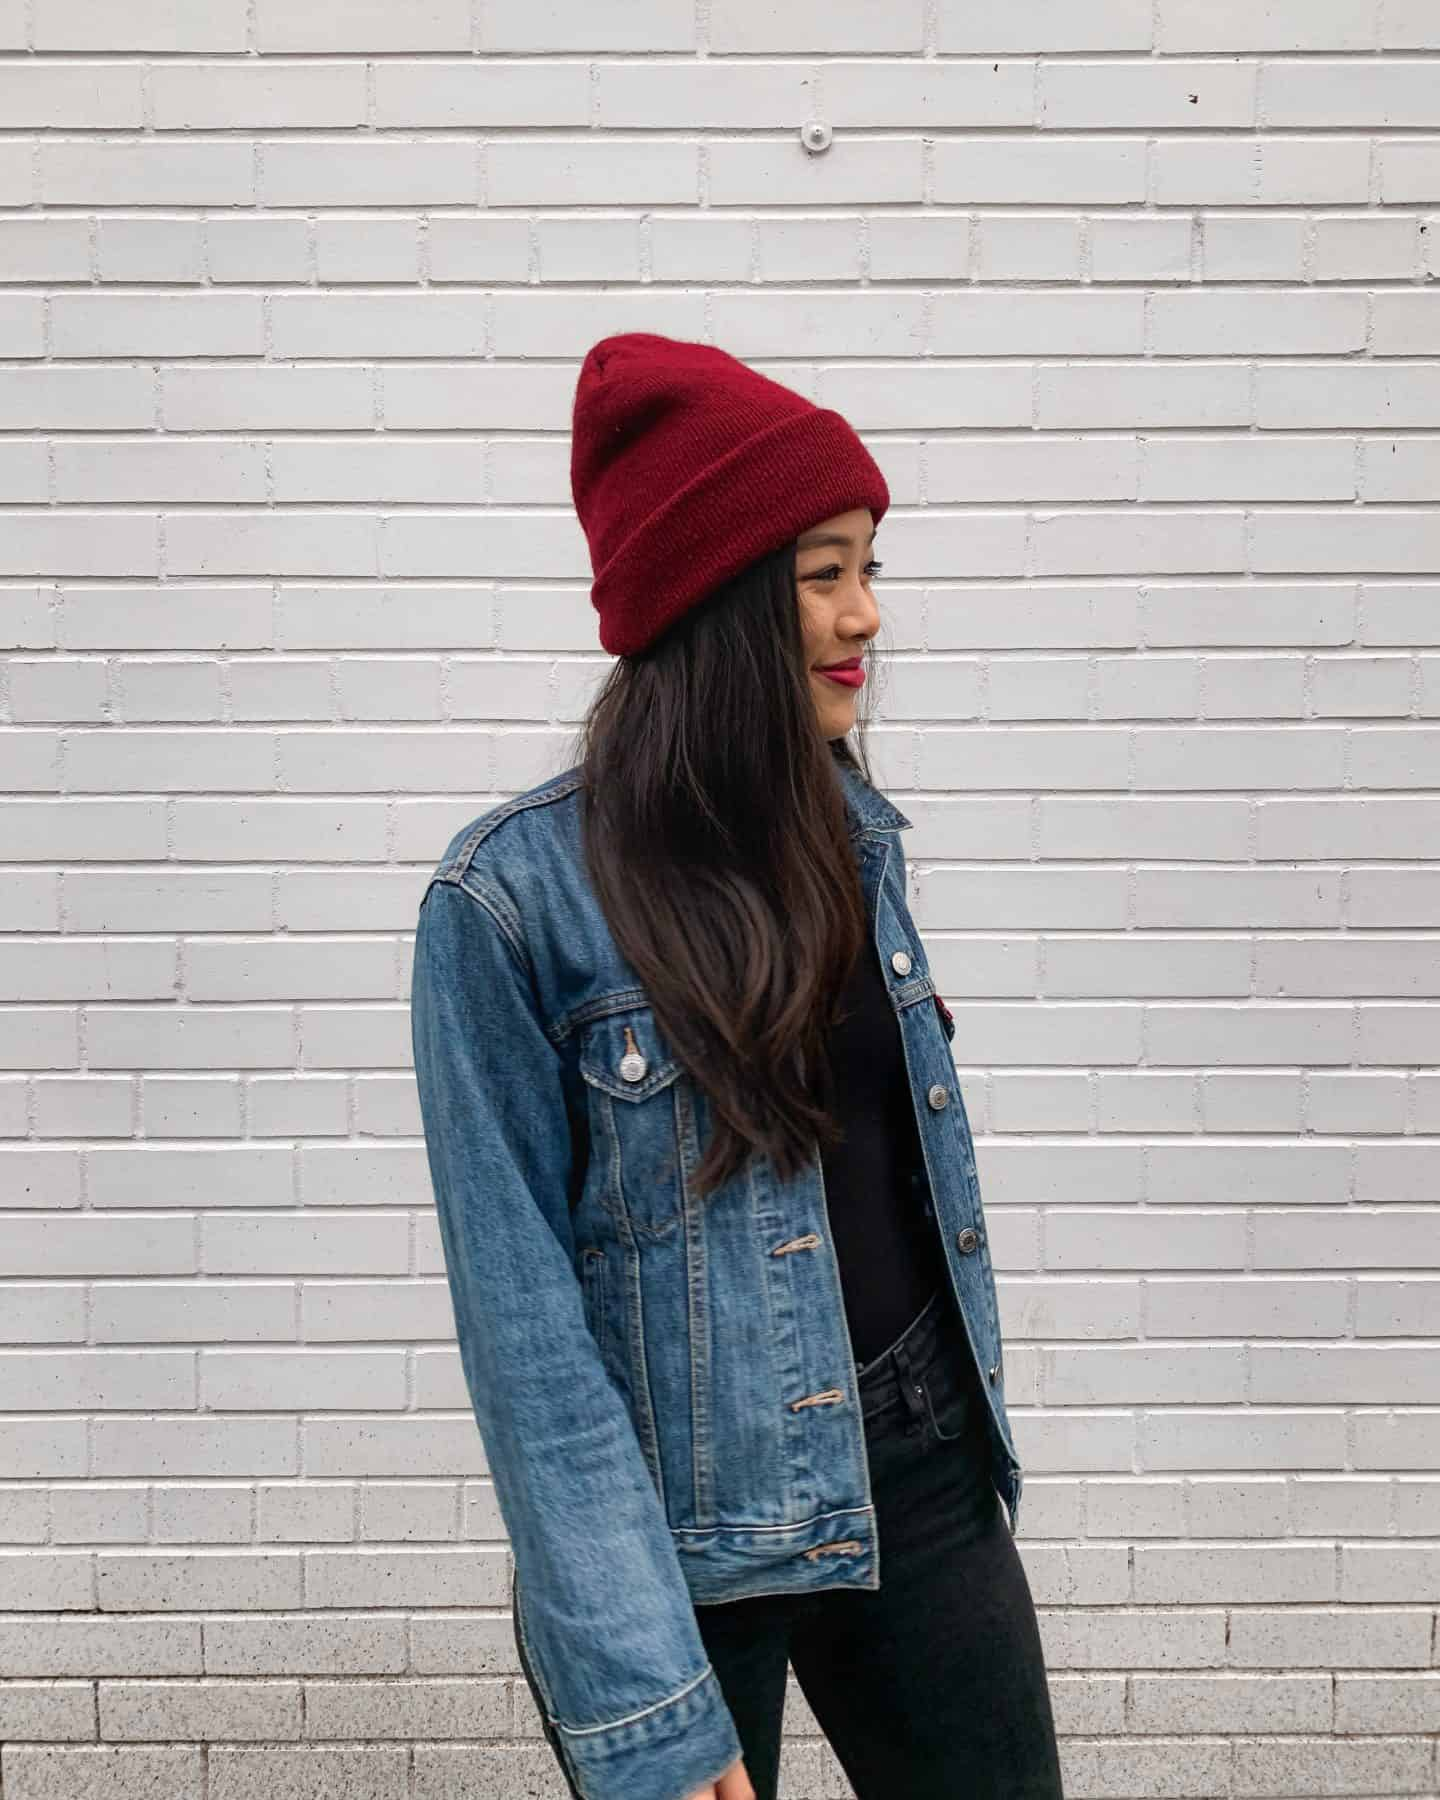 Amazon Fashion outfit - American Apparel beanie and Levi's trucker jacket